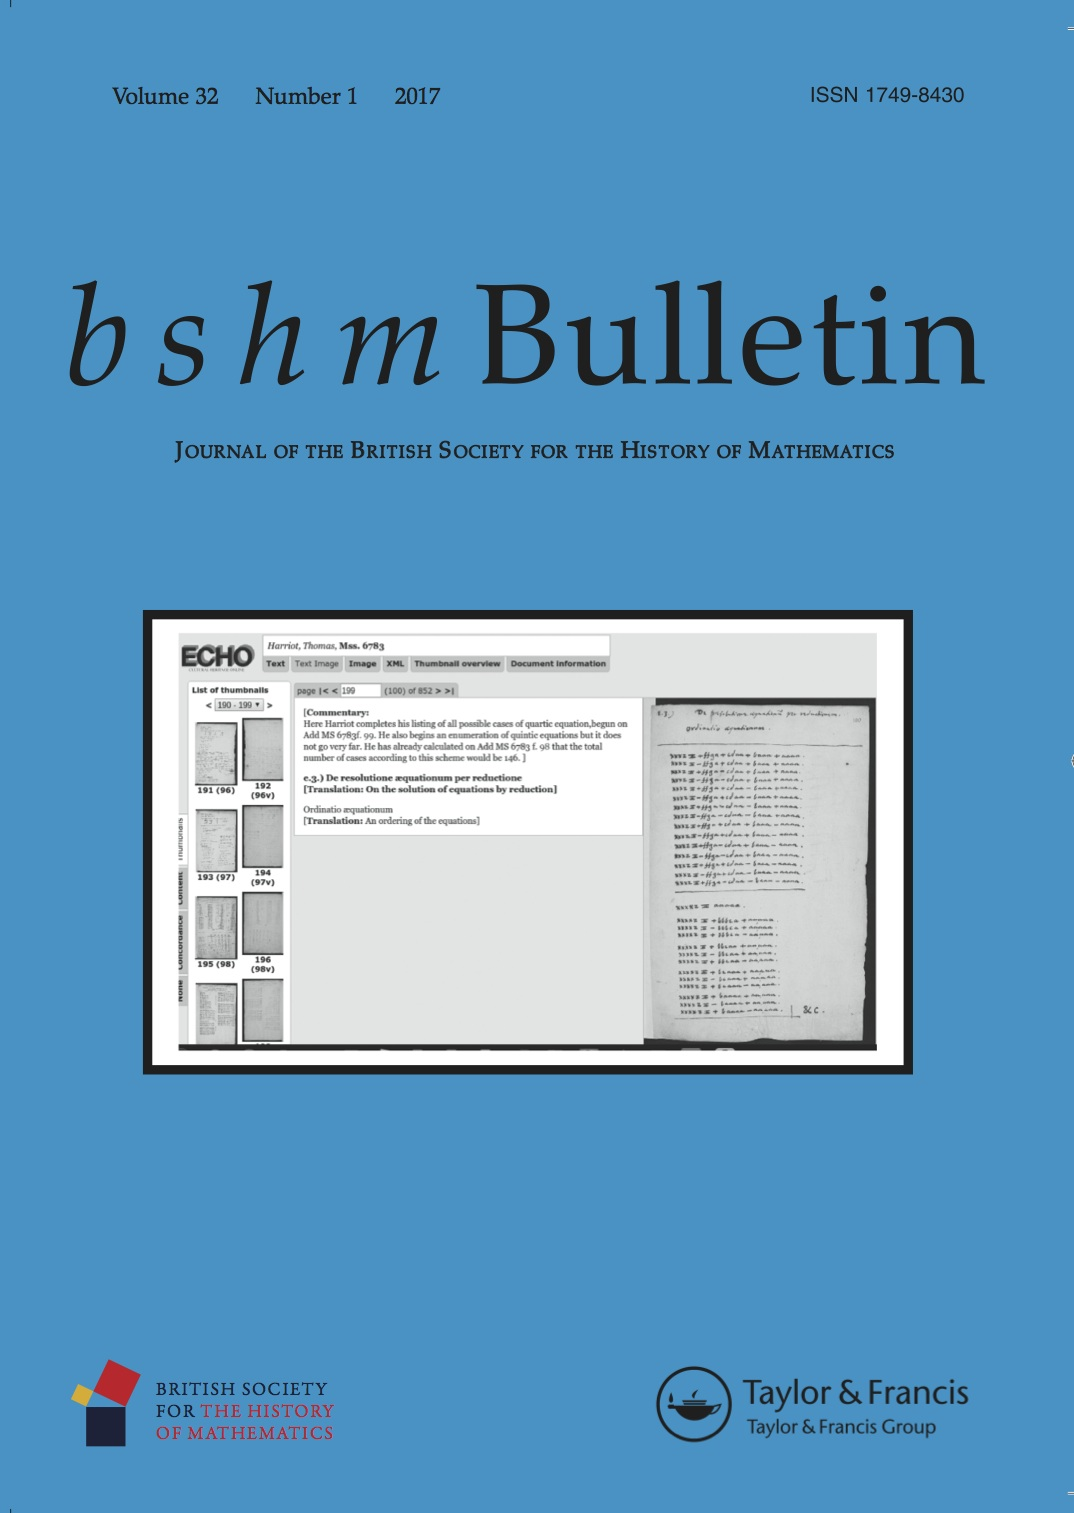 Image of cover of BSHM Bulletin vol 32 issue 1